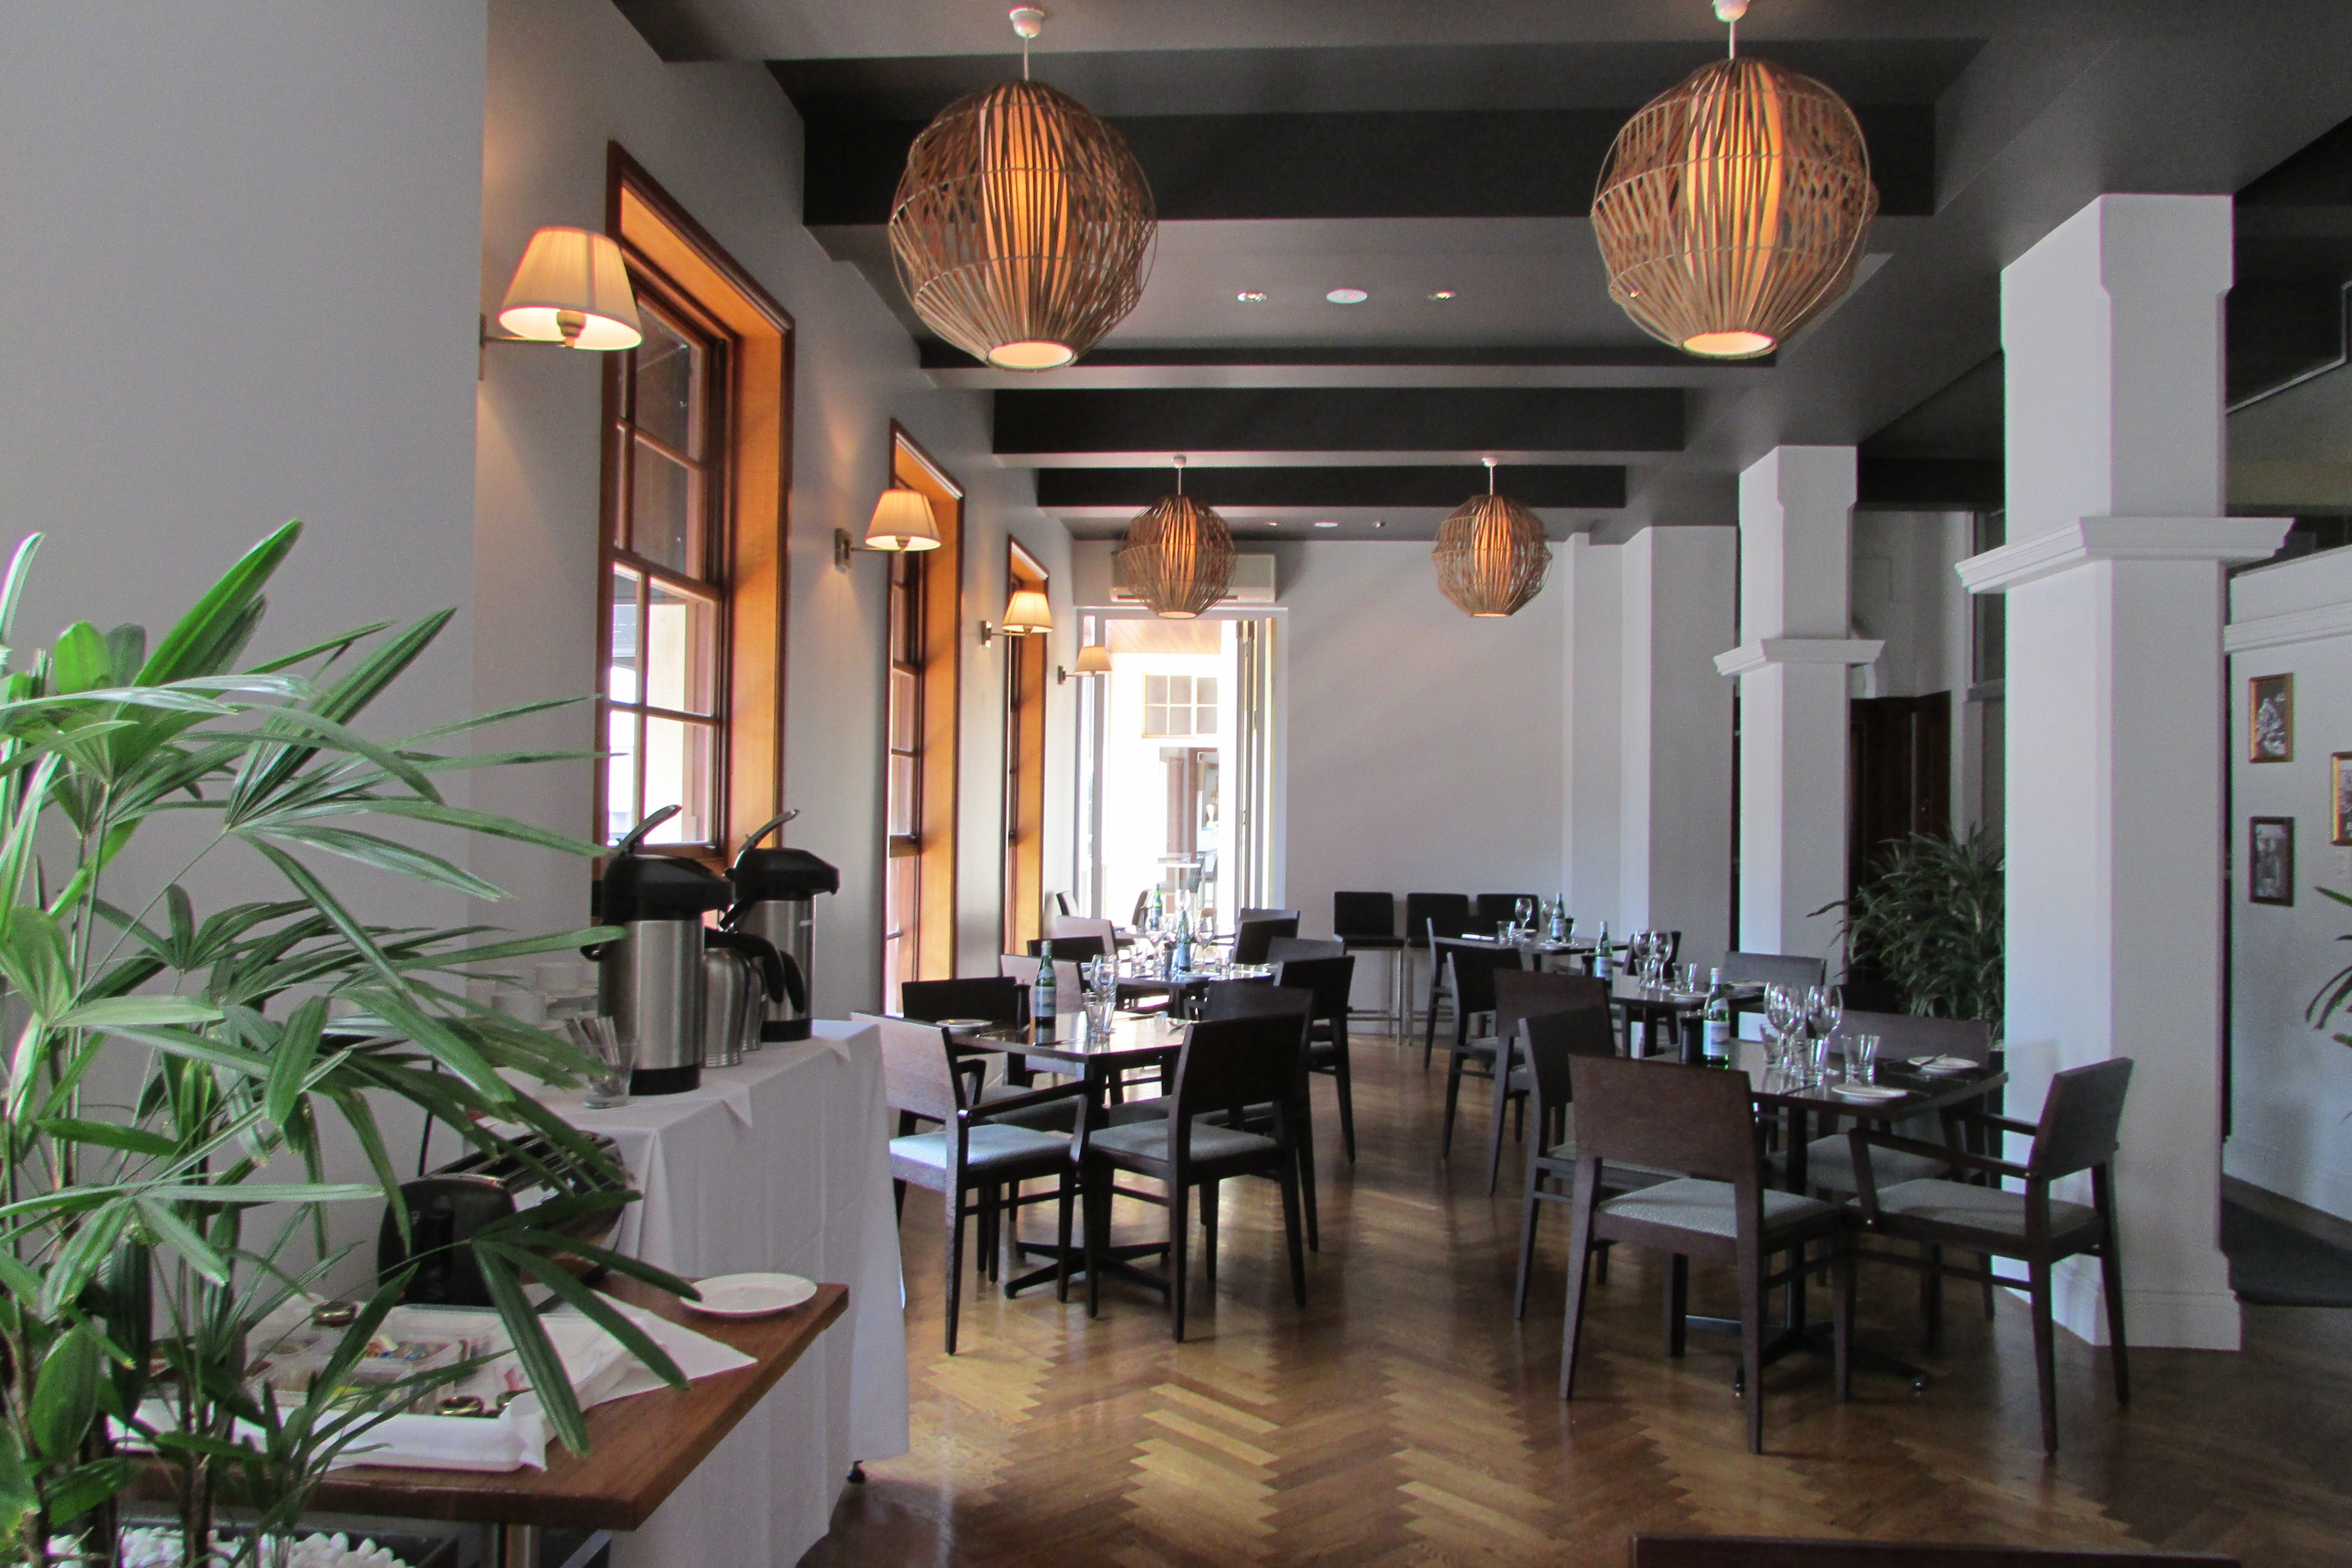 The New Inchcolm Hotel Restaurant